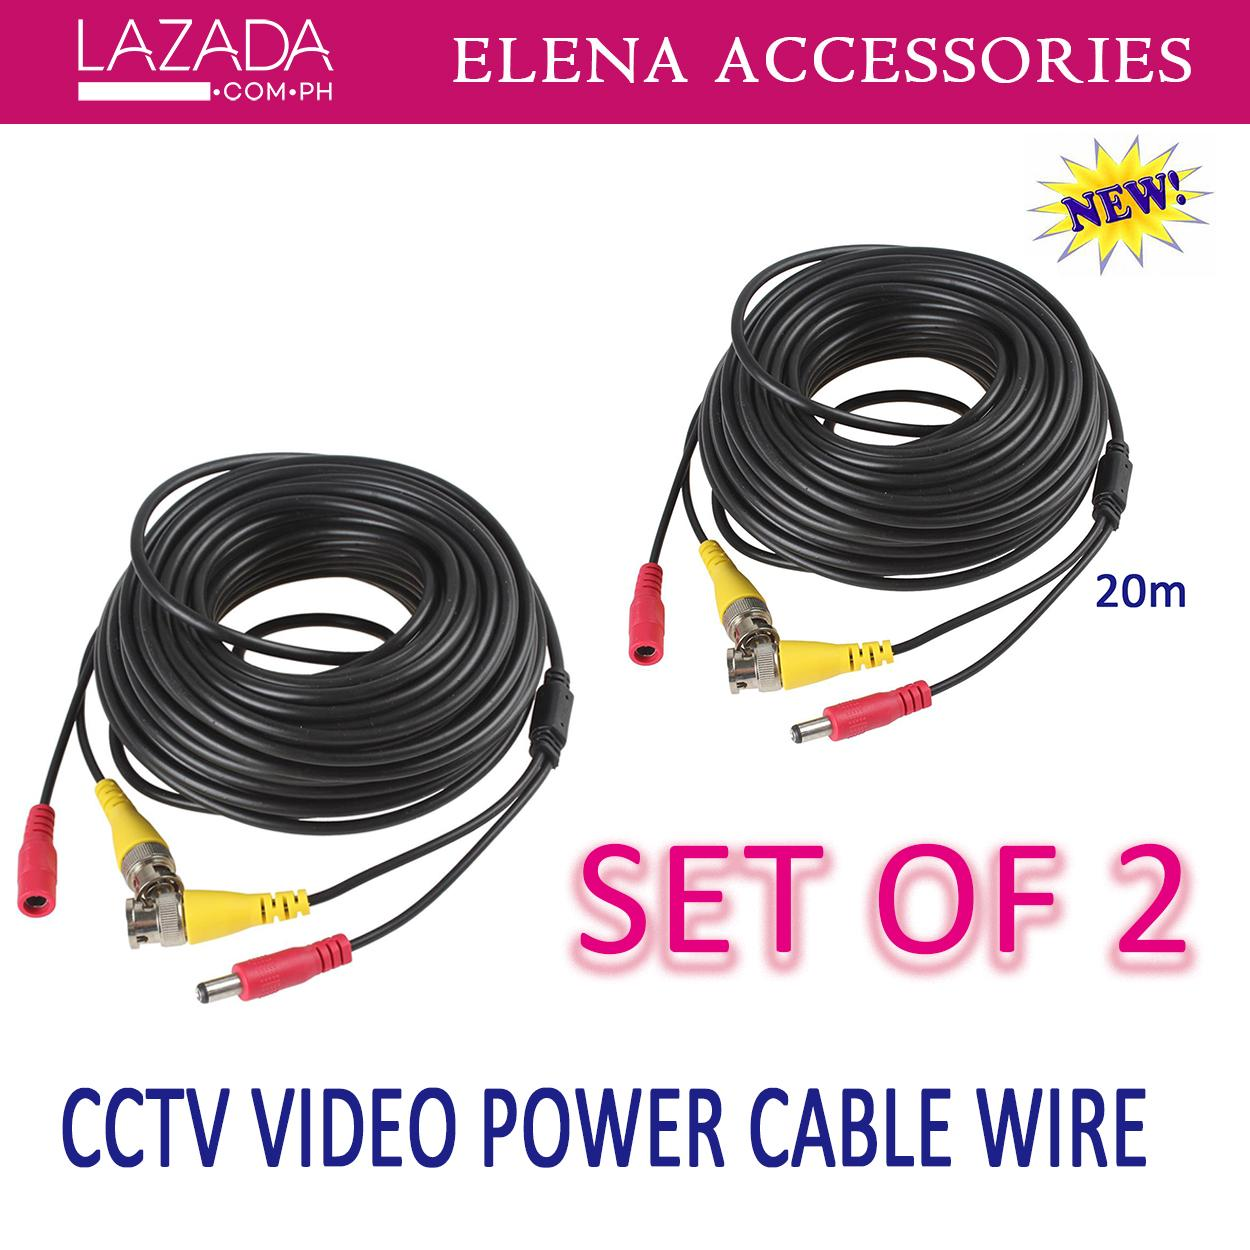 Cctv Camera For Sale Security Cam Prices Brands Specs In Kabel Usb To Micro Howell High Quality 1 5 Meter Set Of 2 Video Power Cable Dvr System 20m Connector